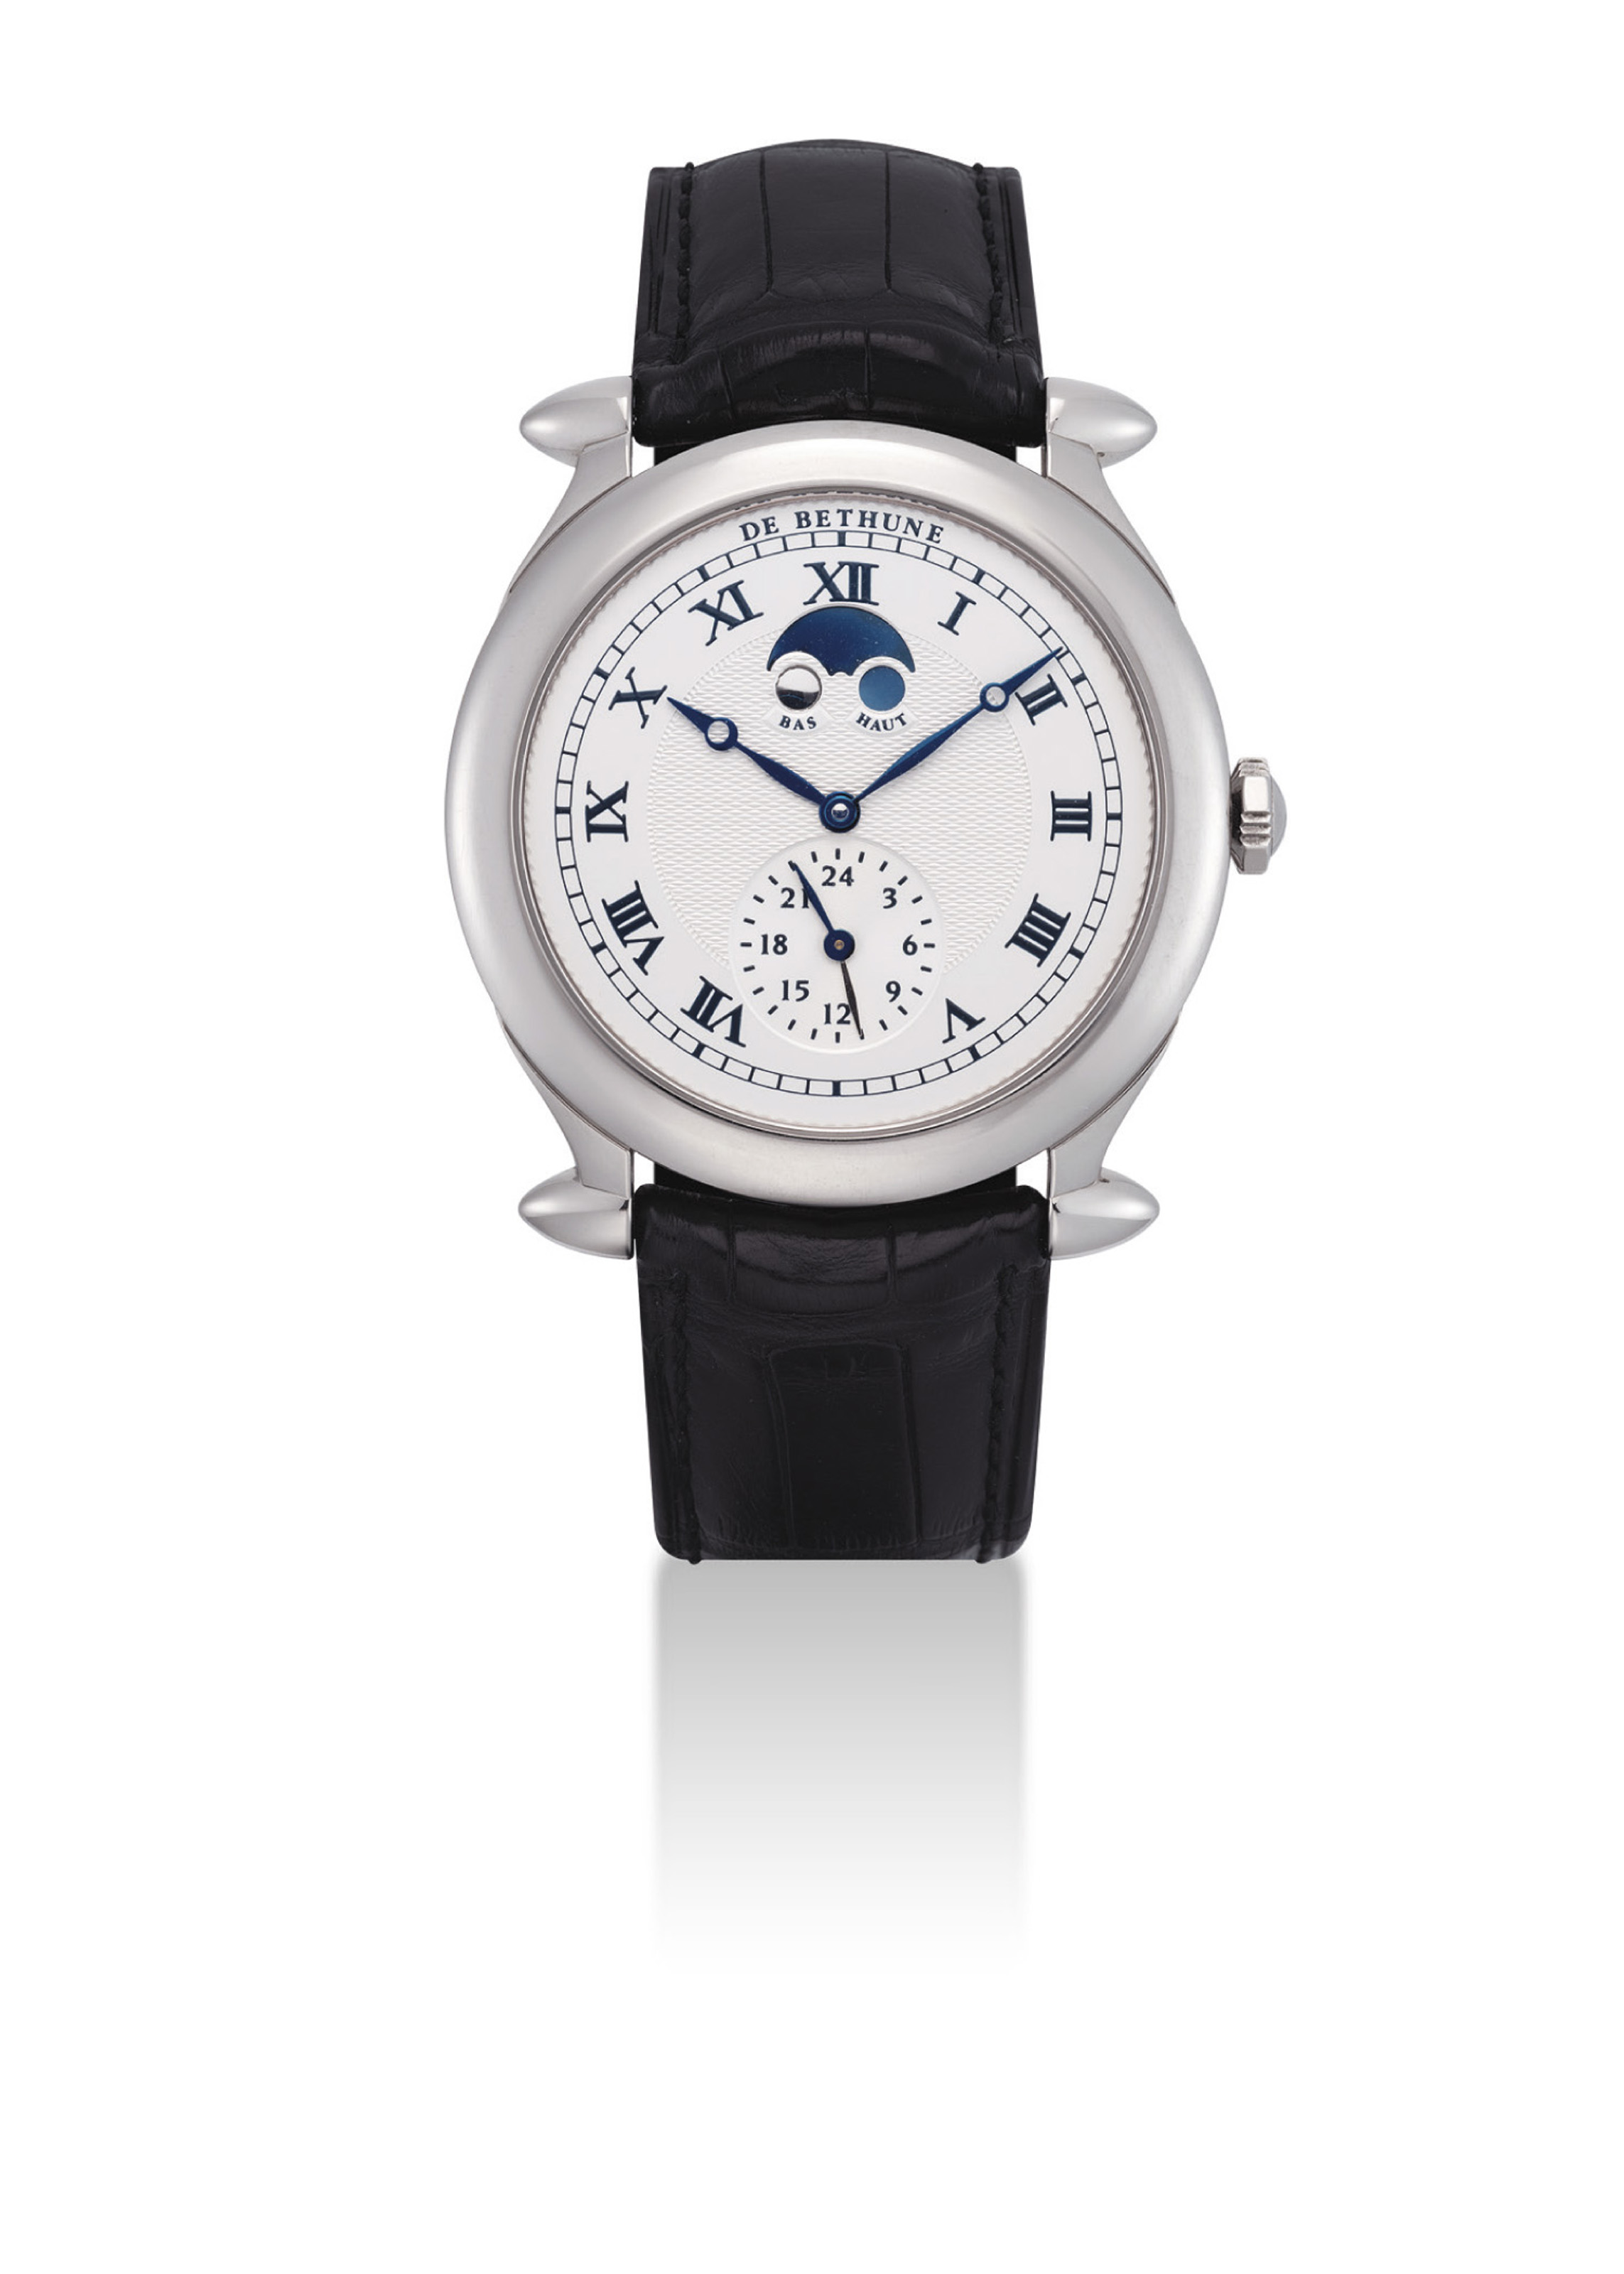 DE BETHUNE. A FINE 18K WHITE GOLD DUAL TIME WRISTWATCH WITH MOON PHASES